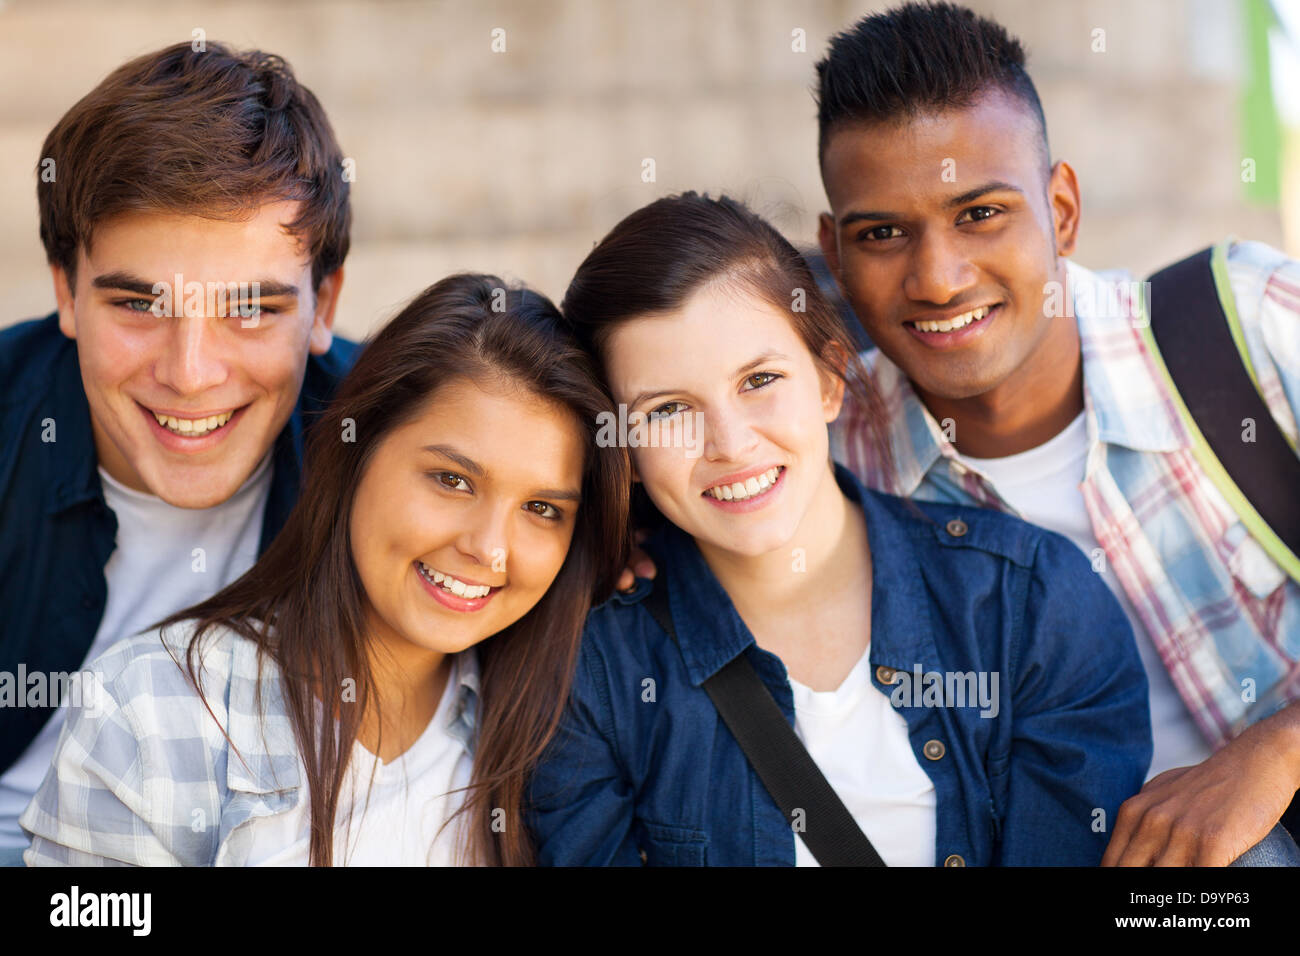 group of happy teen high school students outdoors - Stock Image